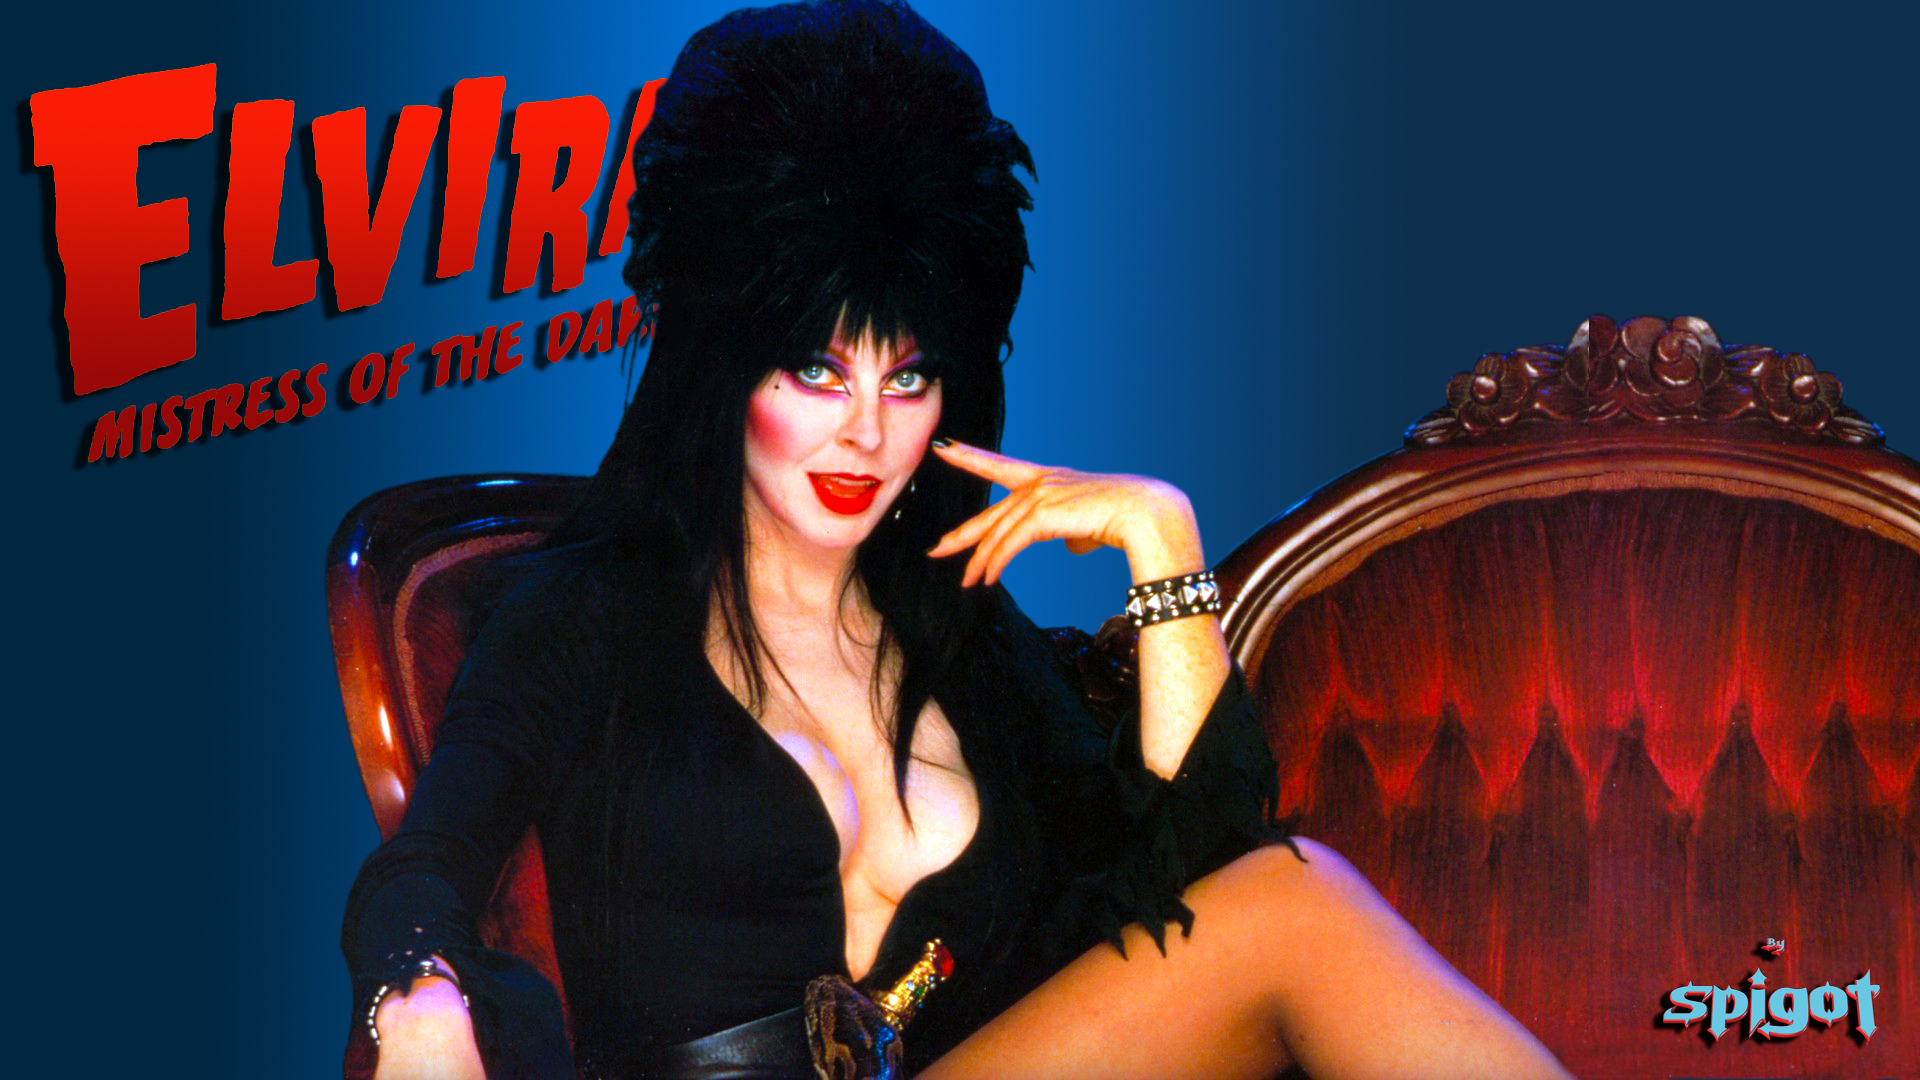 Elvira Halloween Wallpaper #12 | George Spigot's Blog